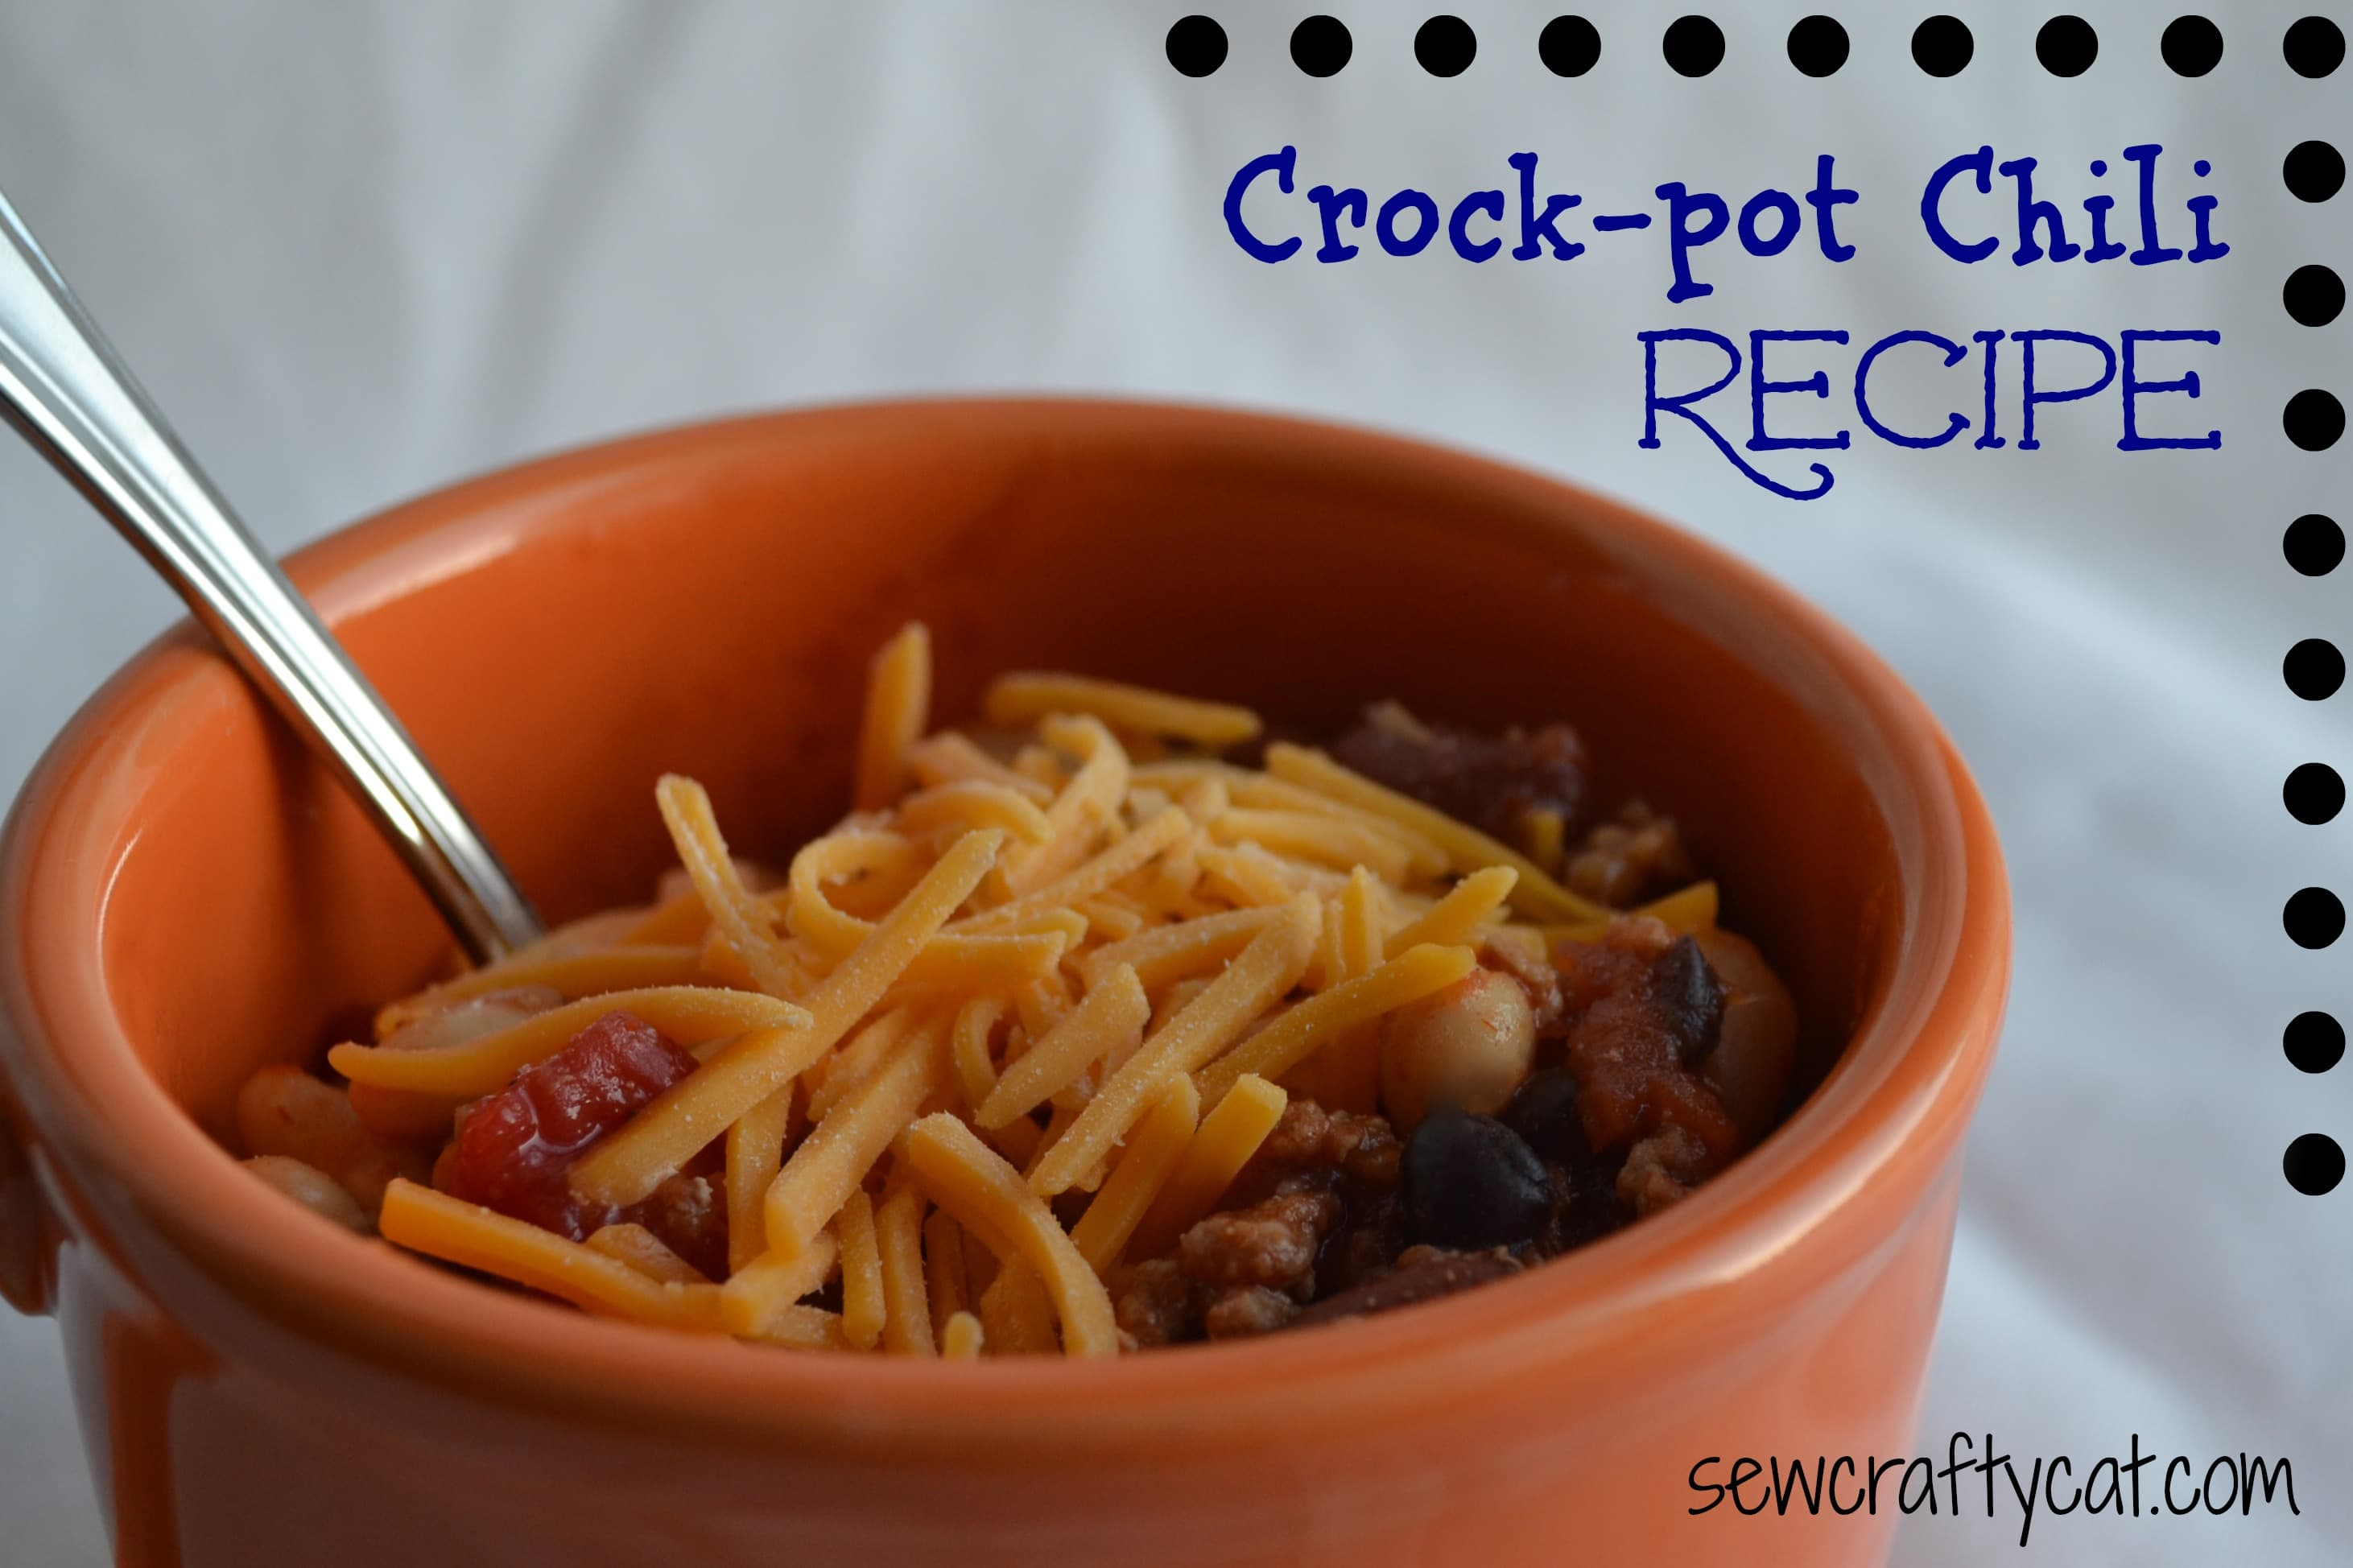 Crock-Pot Chili - Typically Simple